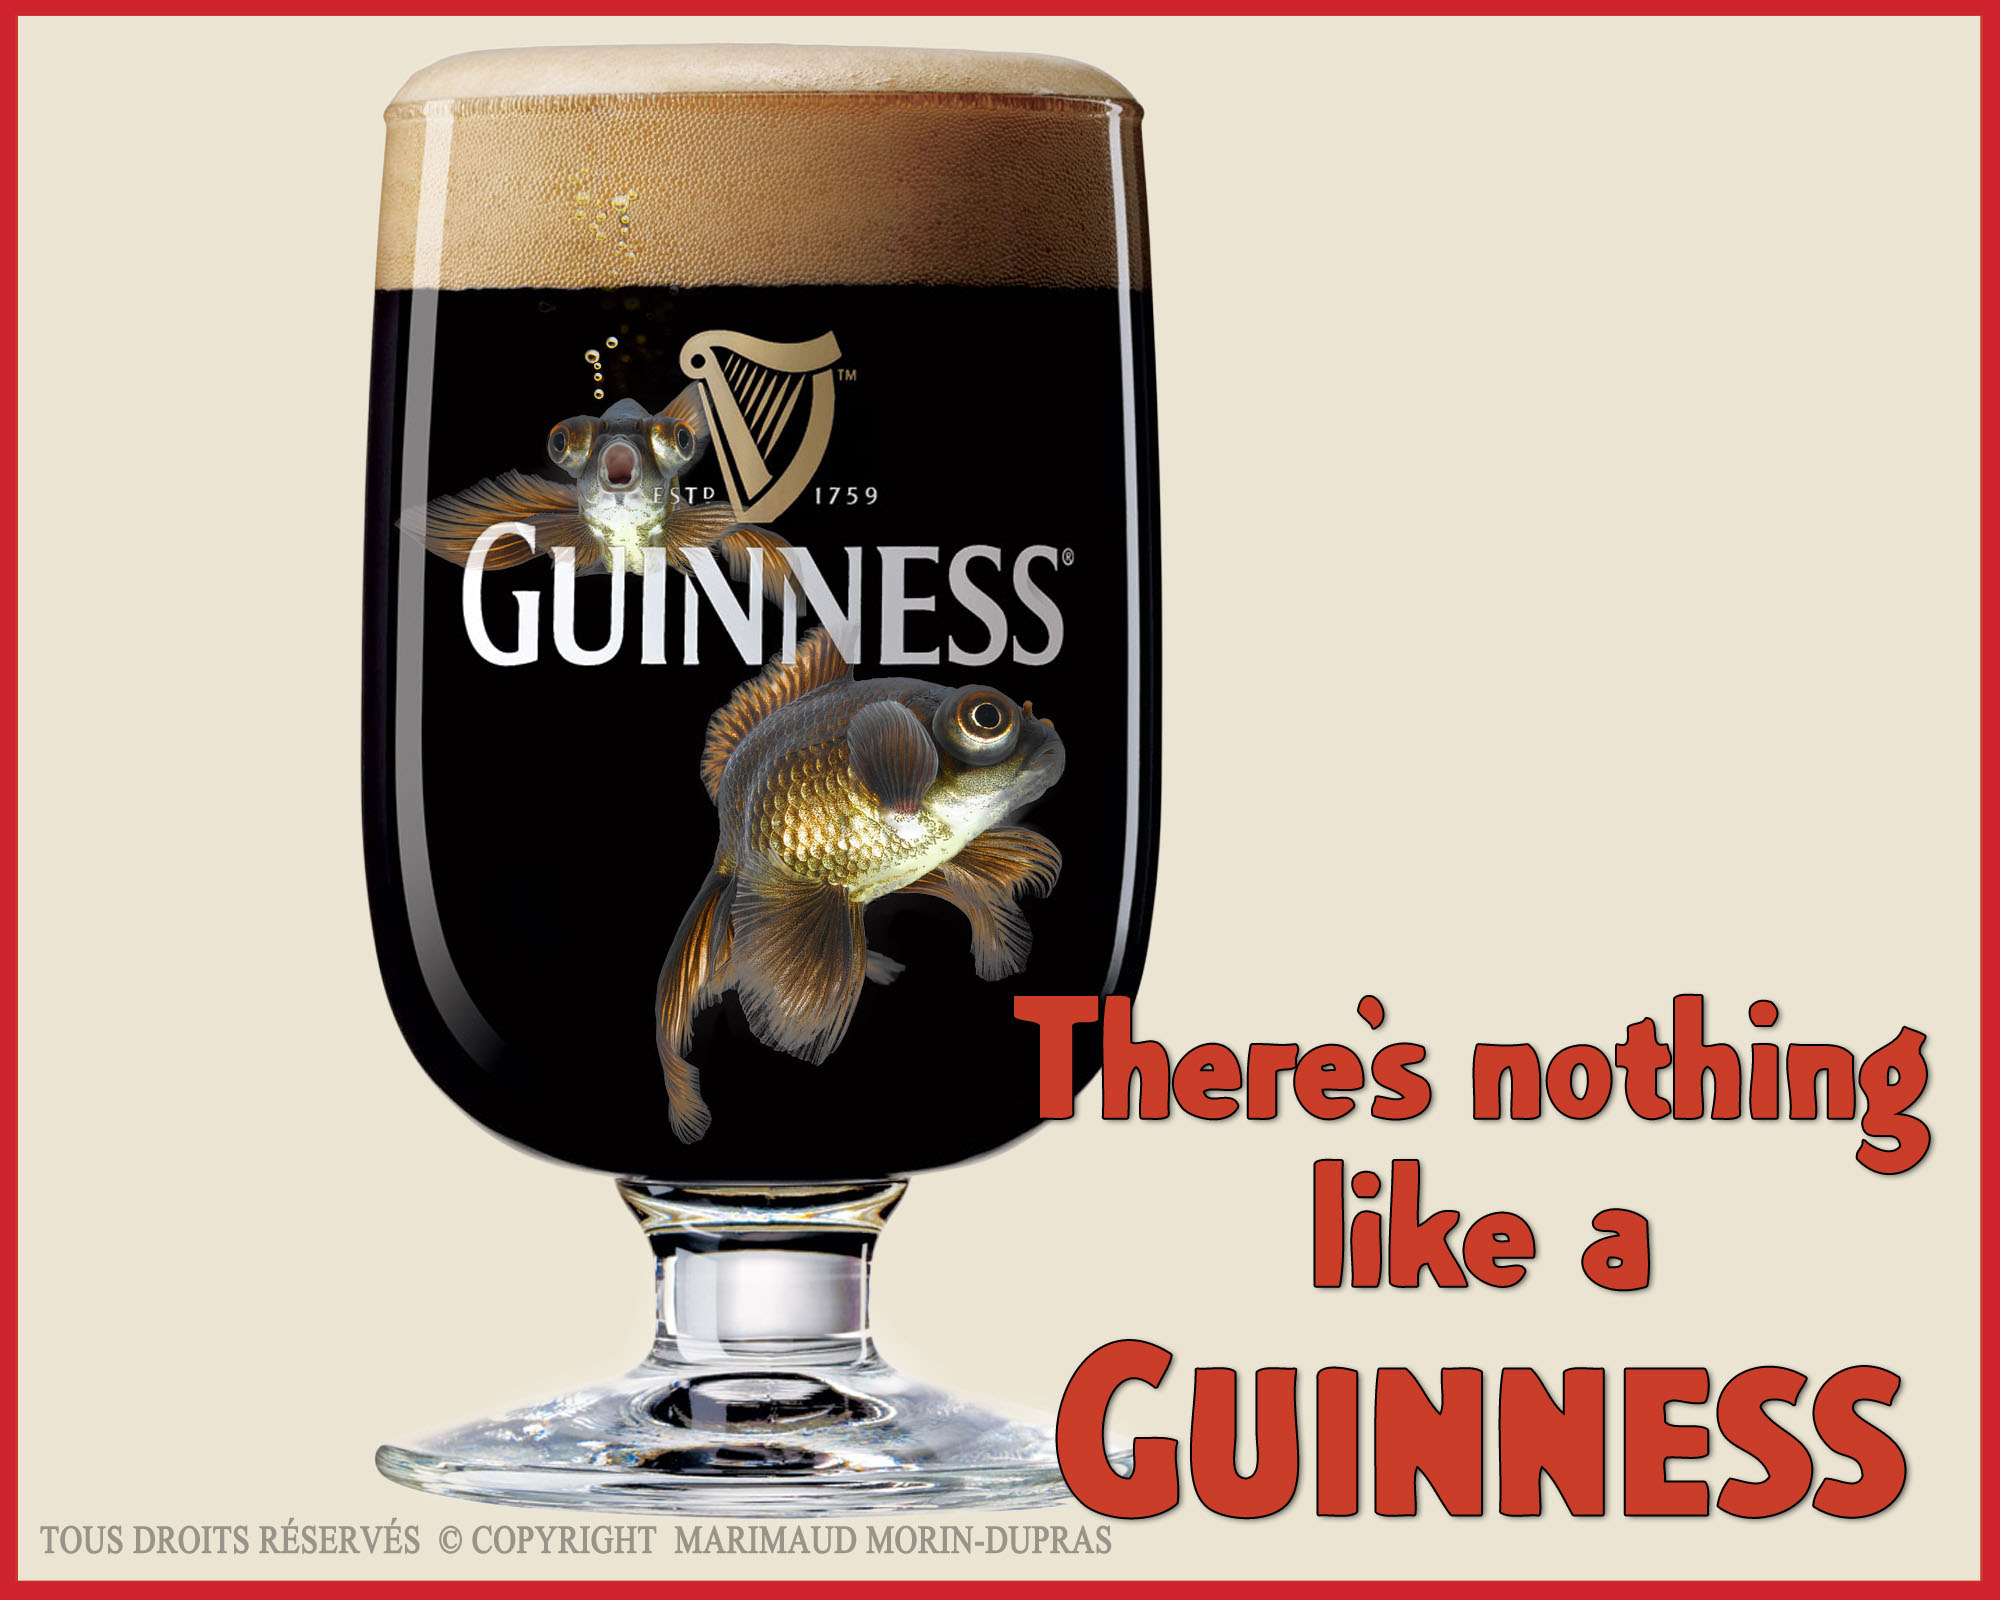 There's nothing like a Guinness Traitement numérique de l'image 2014